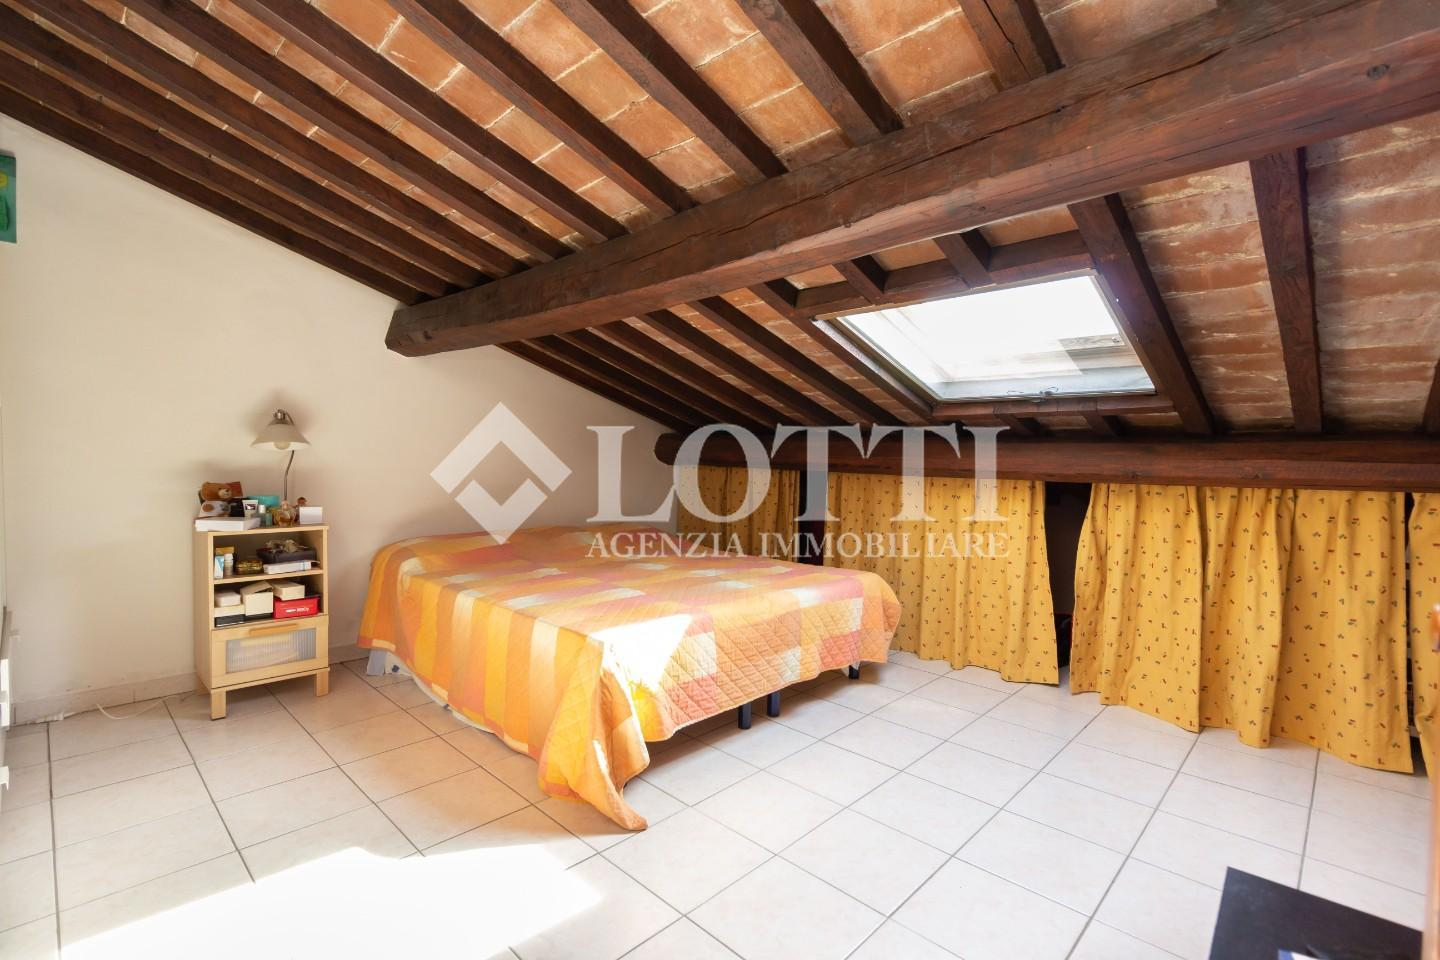 Apartment for sale, ref. 607